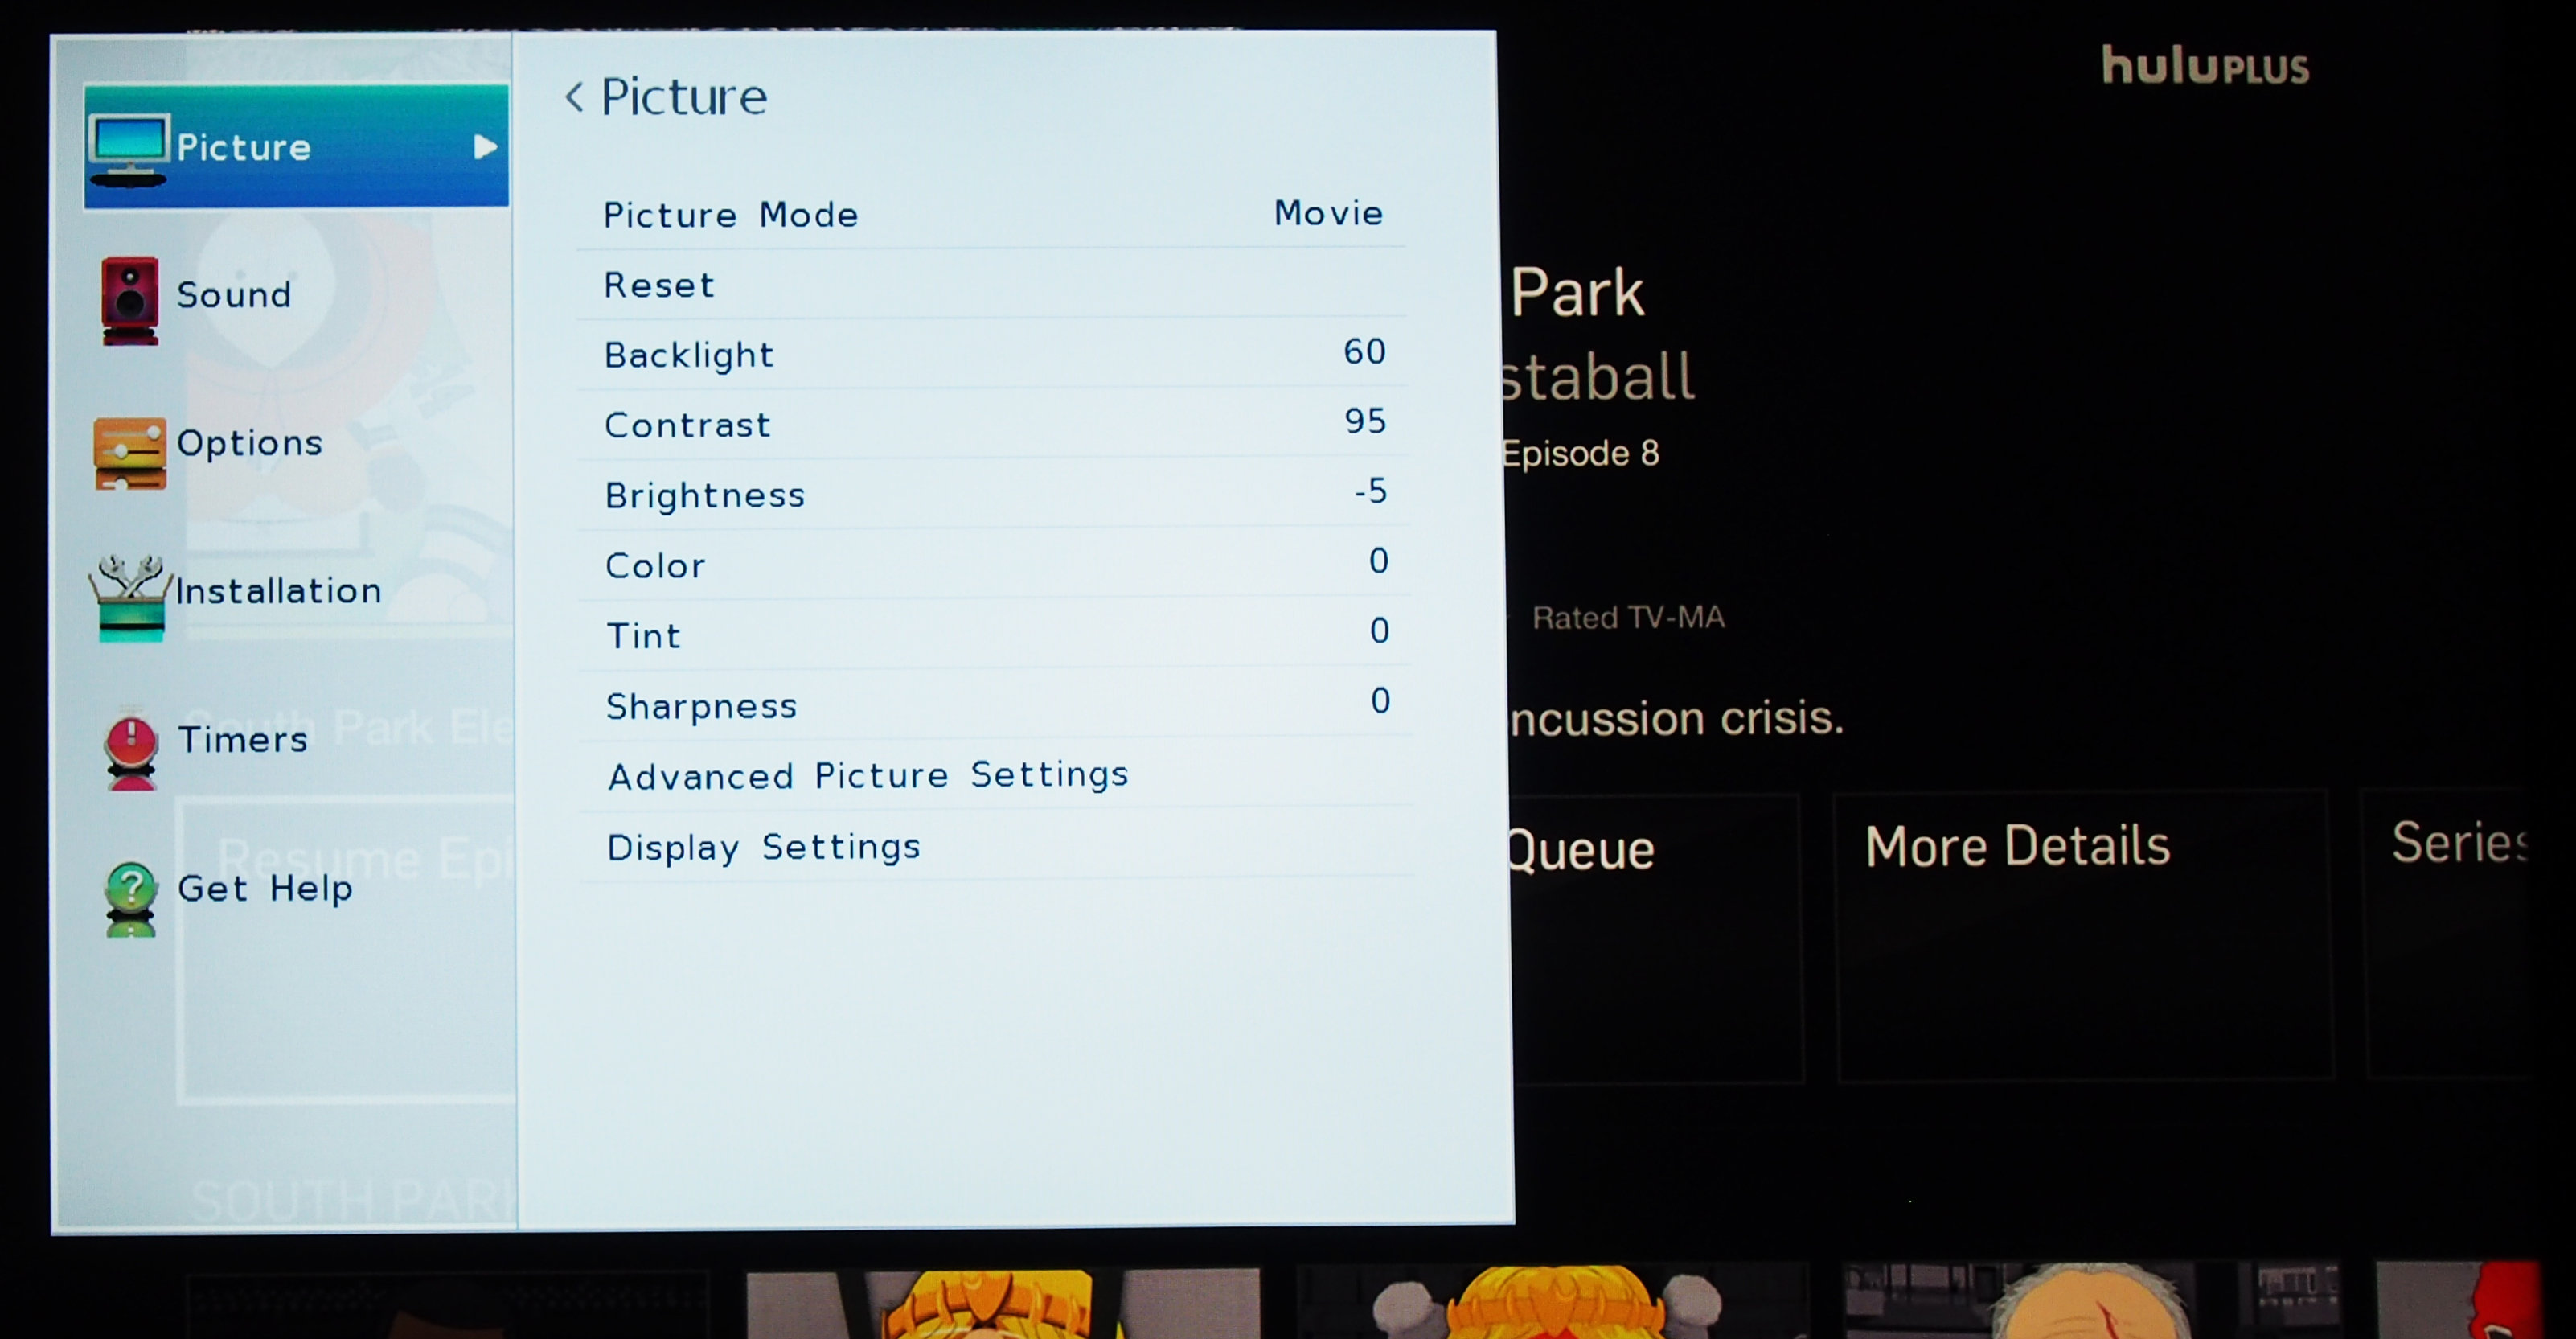 The Picture menu has all basic tweaks available, plus a fully-loaded color management system.